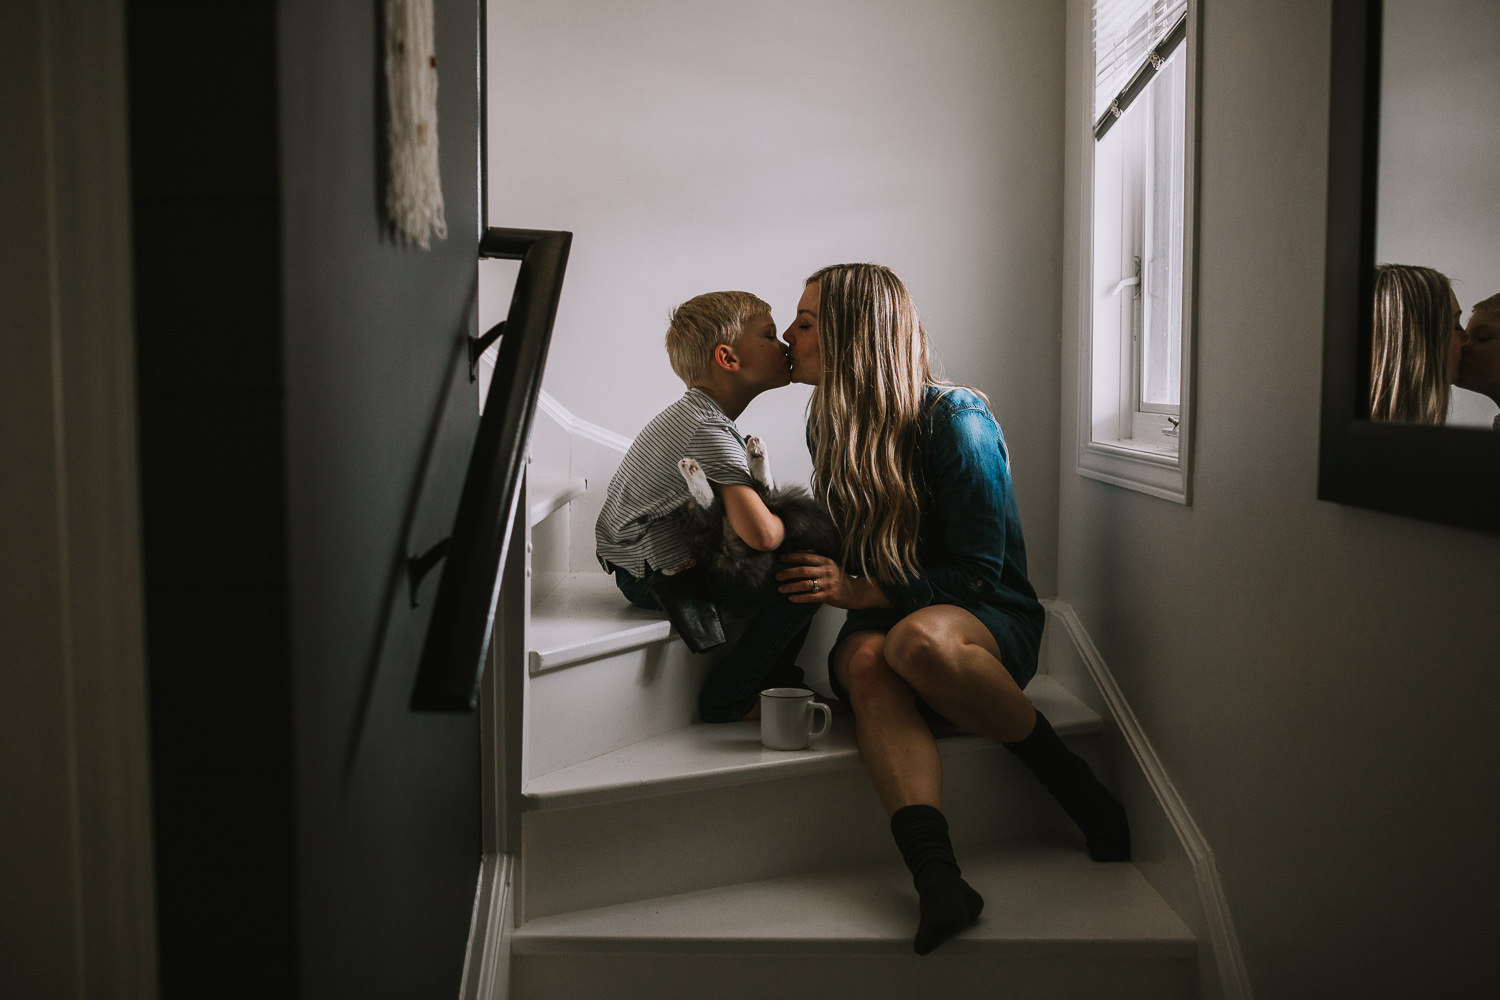 Mom kisses 4 year old blonde son holding pet cat while sitting on stairs - Stouffville child photography